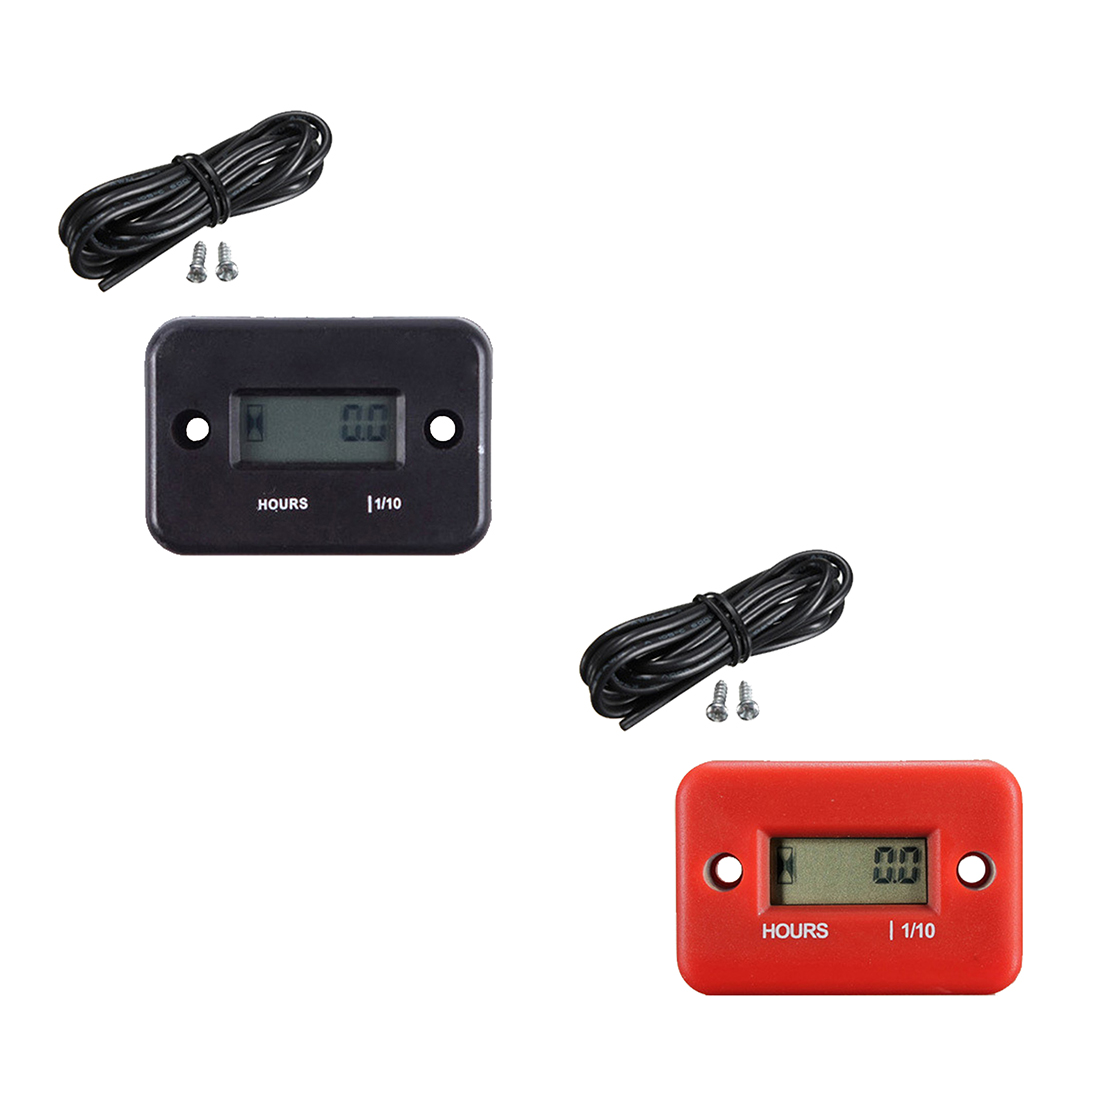 1pcs New Inductive Digital Hour Meter Waterproof LCD Display for Bike Motorcycle ATV Snowmobile Marine Boat Ski Dirt Gas Engine resettable inductive tacho hour volt meter for motorcycle snowmobile atv utv jet ski dirt bike marine pit bike tractor go kart